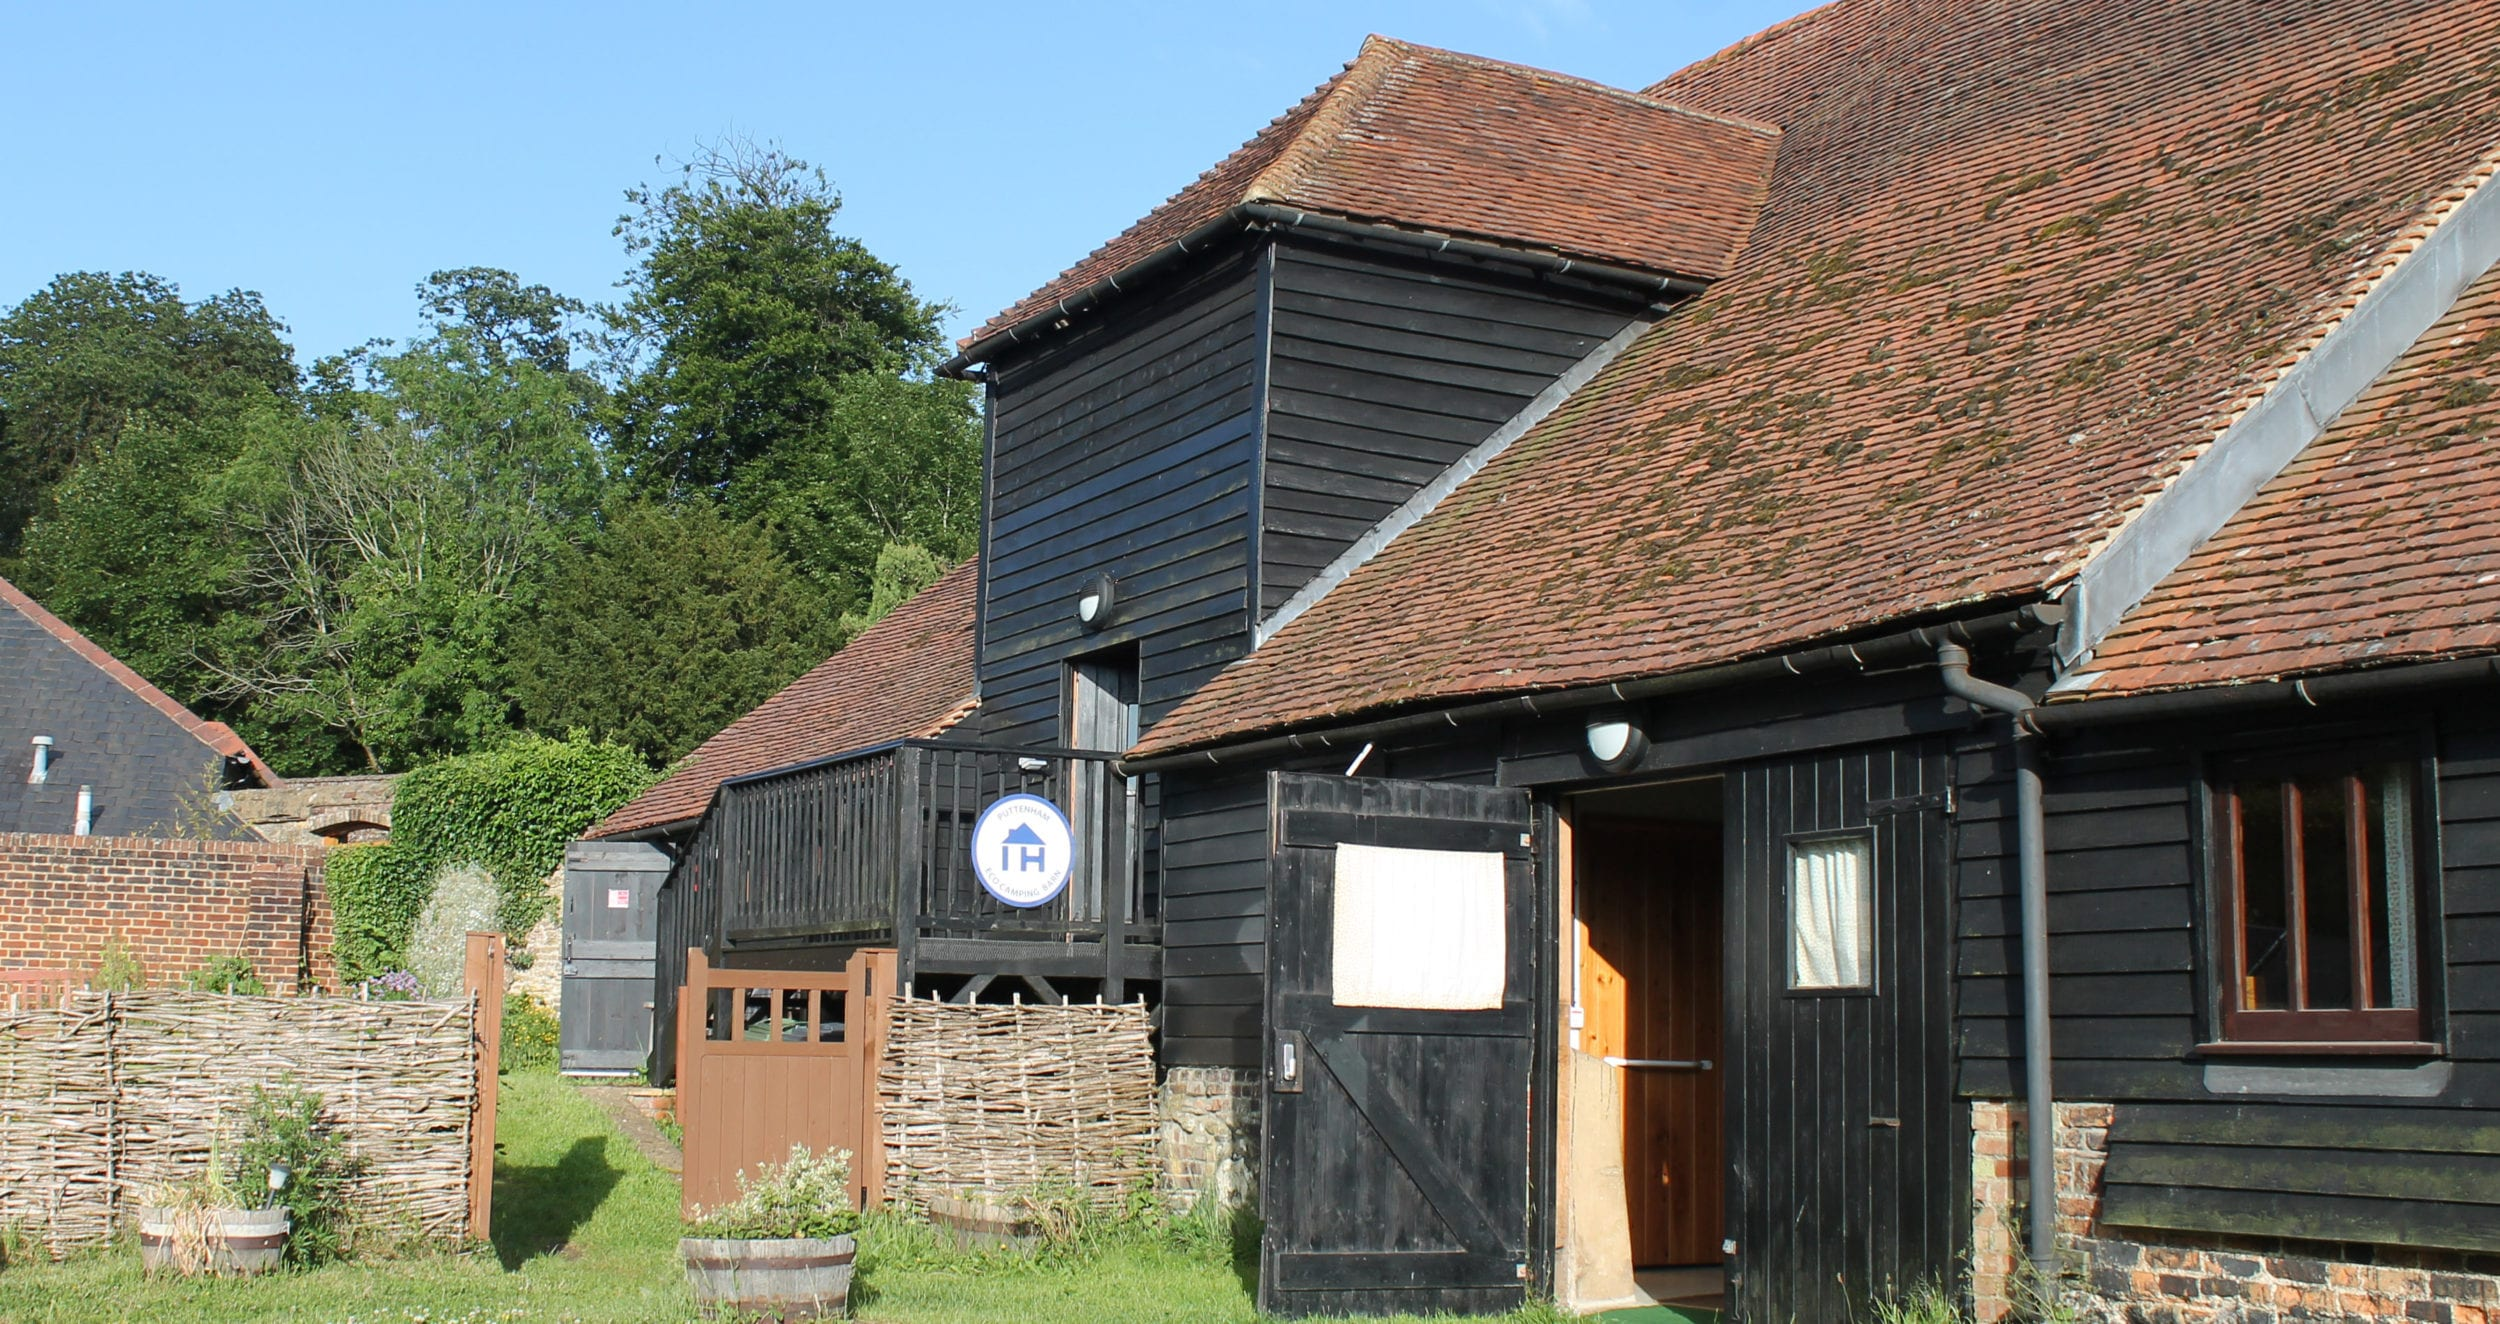 Puttenham Camping Barn on the North Downs Way passed by many DofE walkers every summer